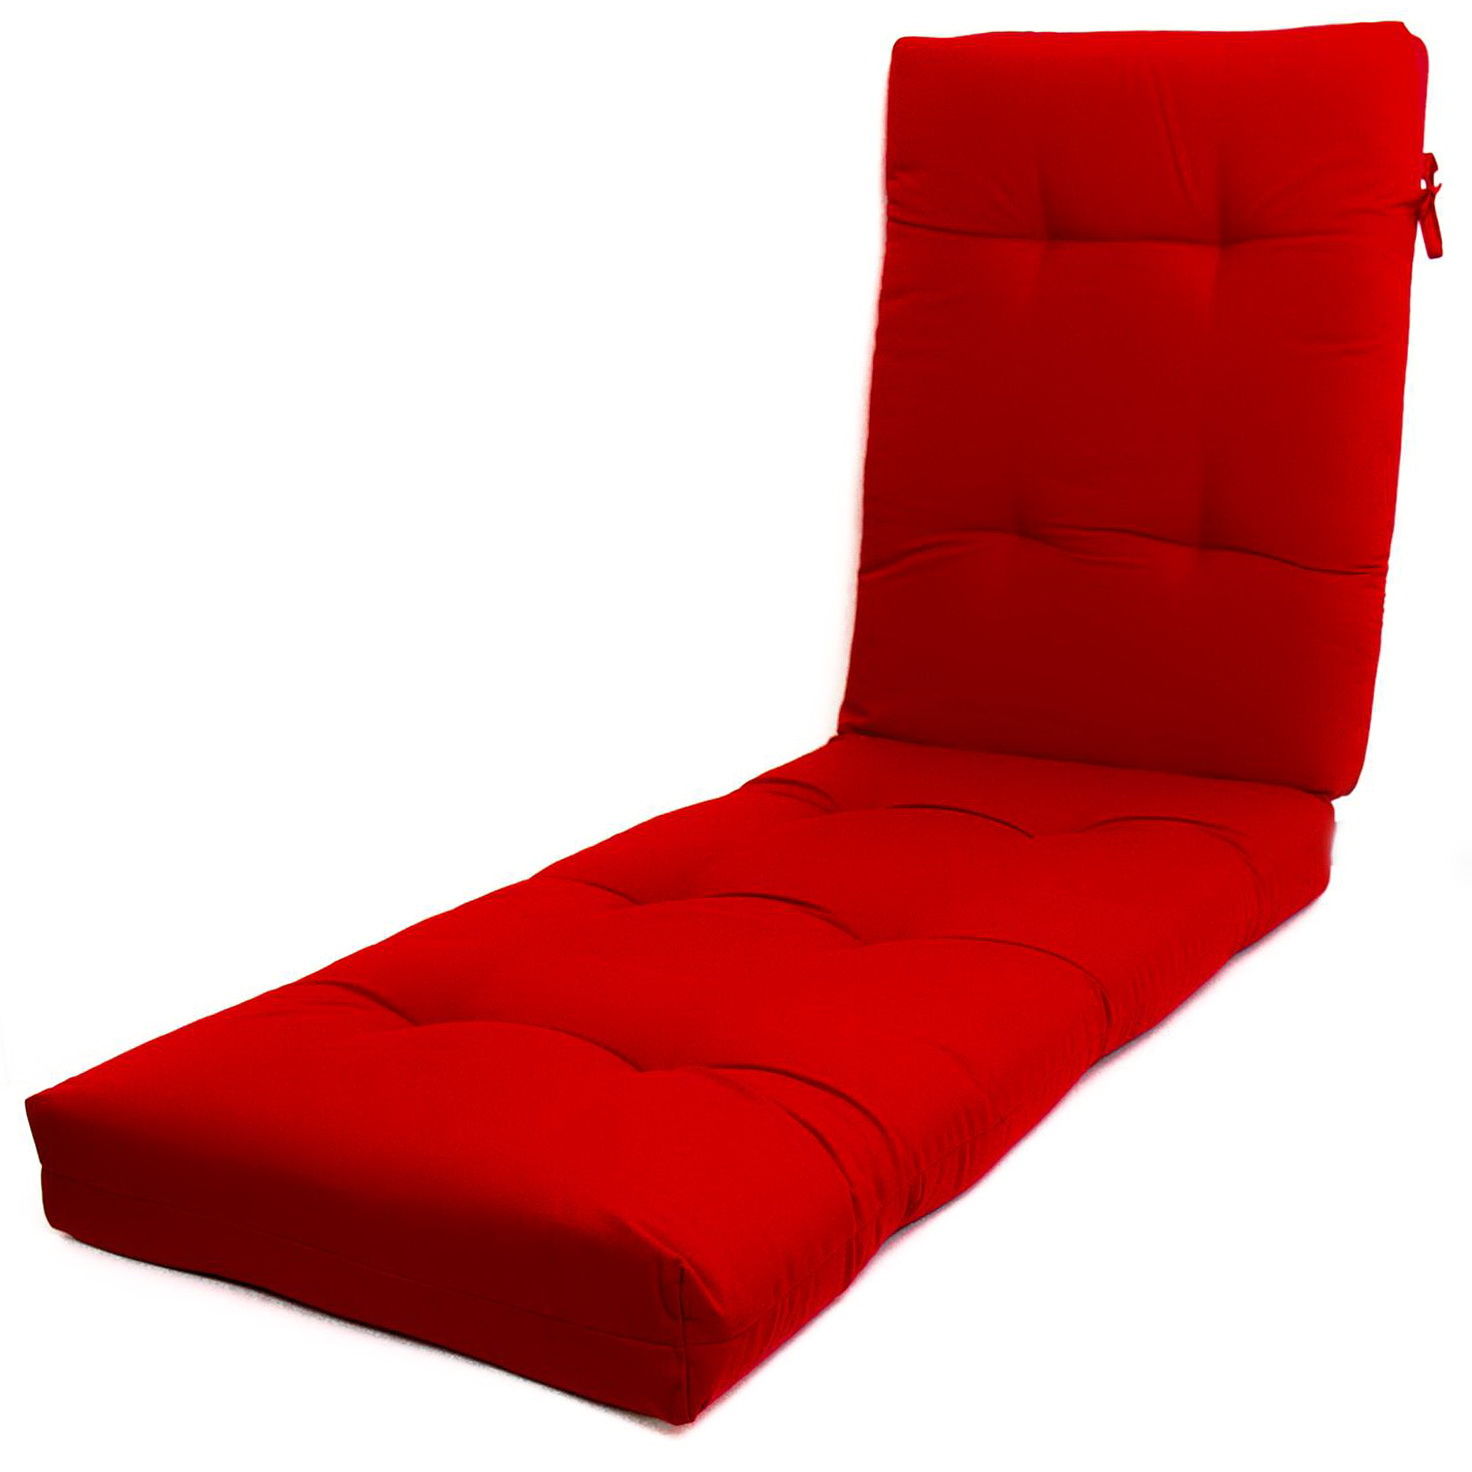 Chaise amazon 28 images chaise haute amazon chaise - Cuisine ouverte refermable ...